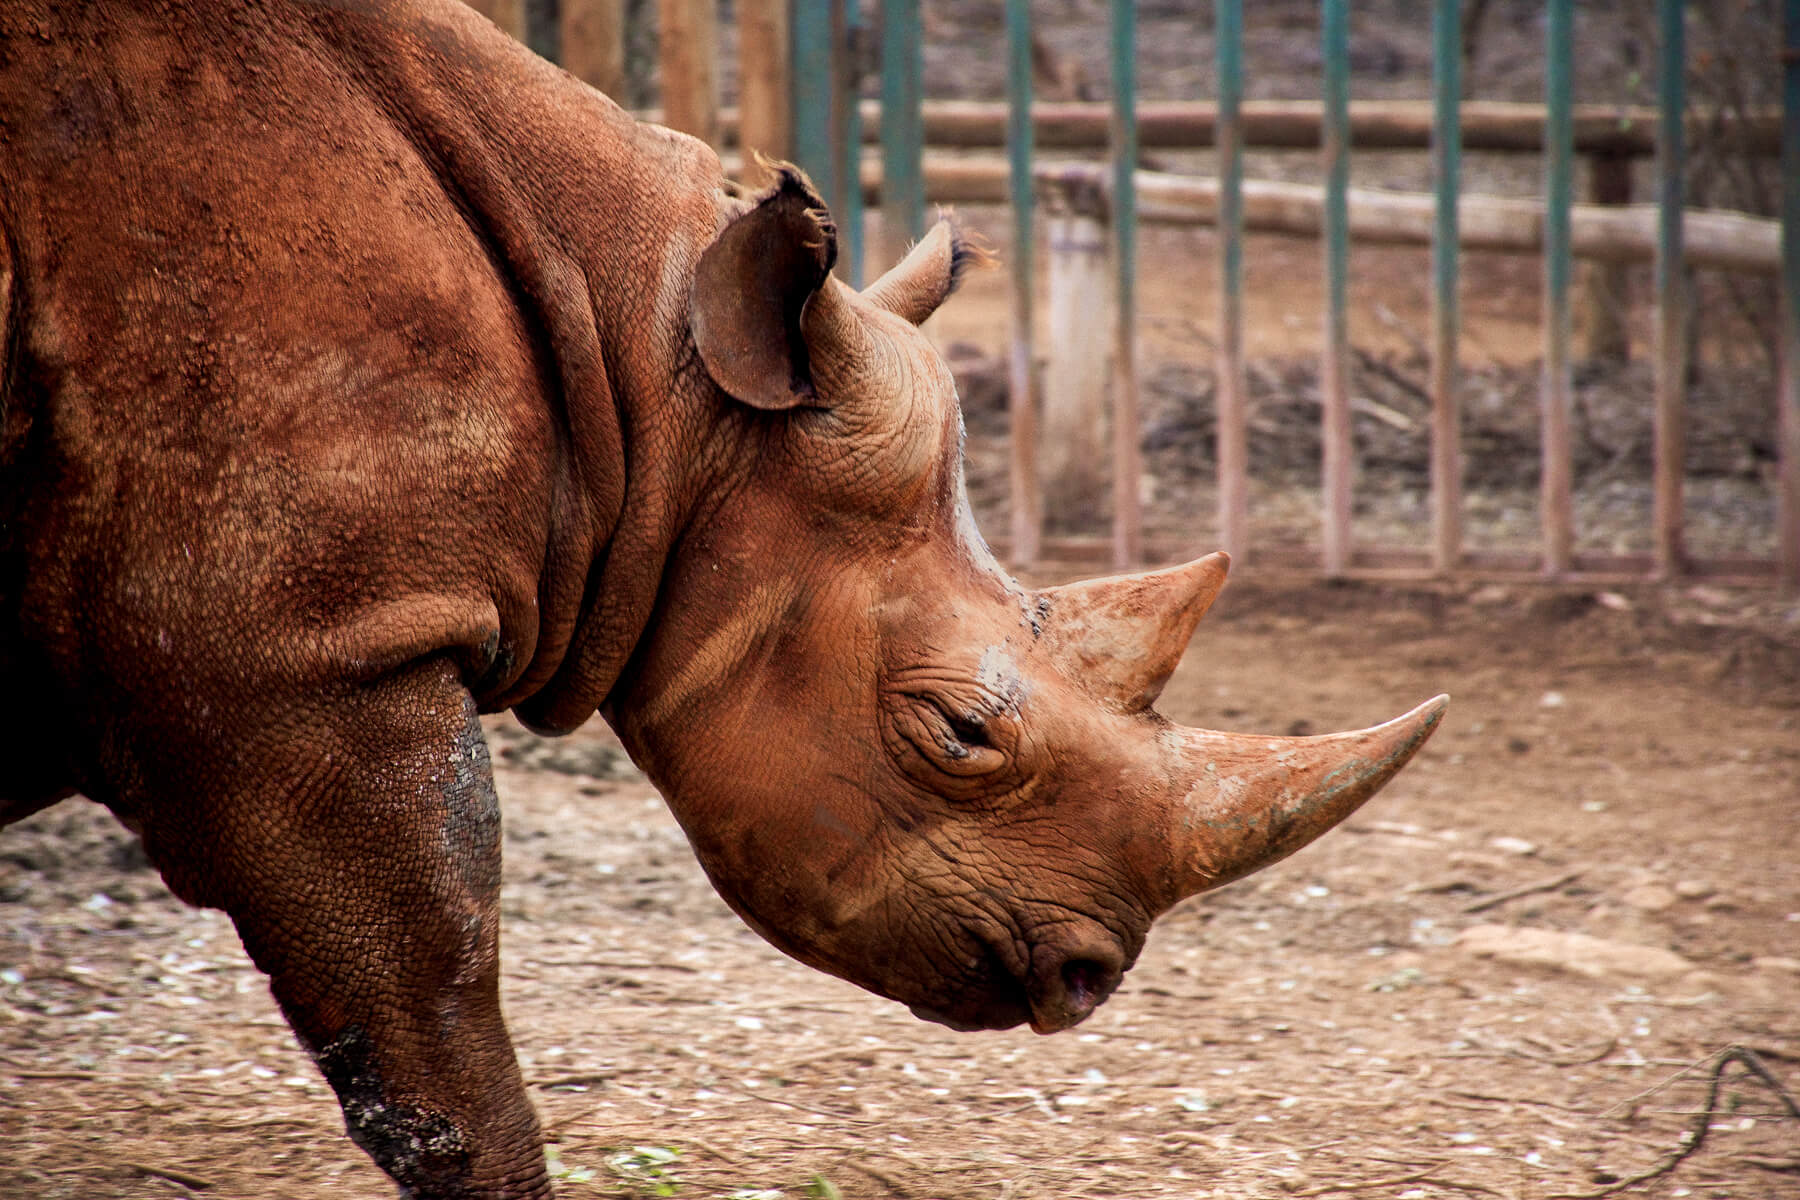 A big Rhinoceros walking in its pen (Maxwell, the blind Rhino at David Sheldrick Wildlife Trust)